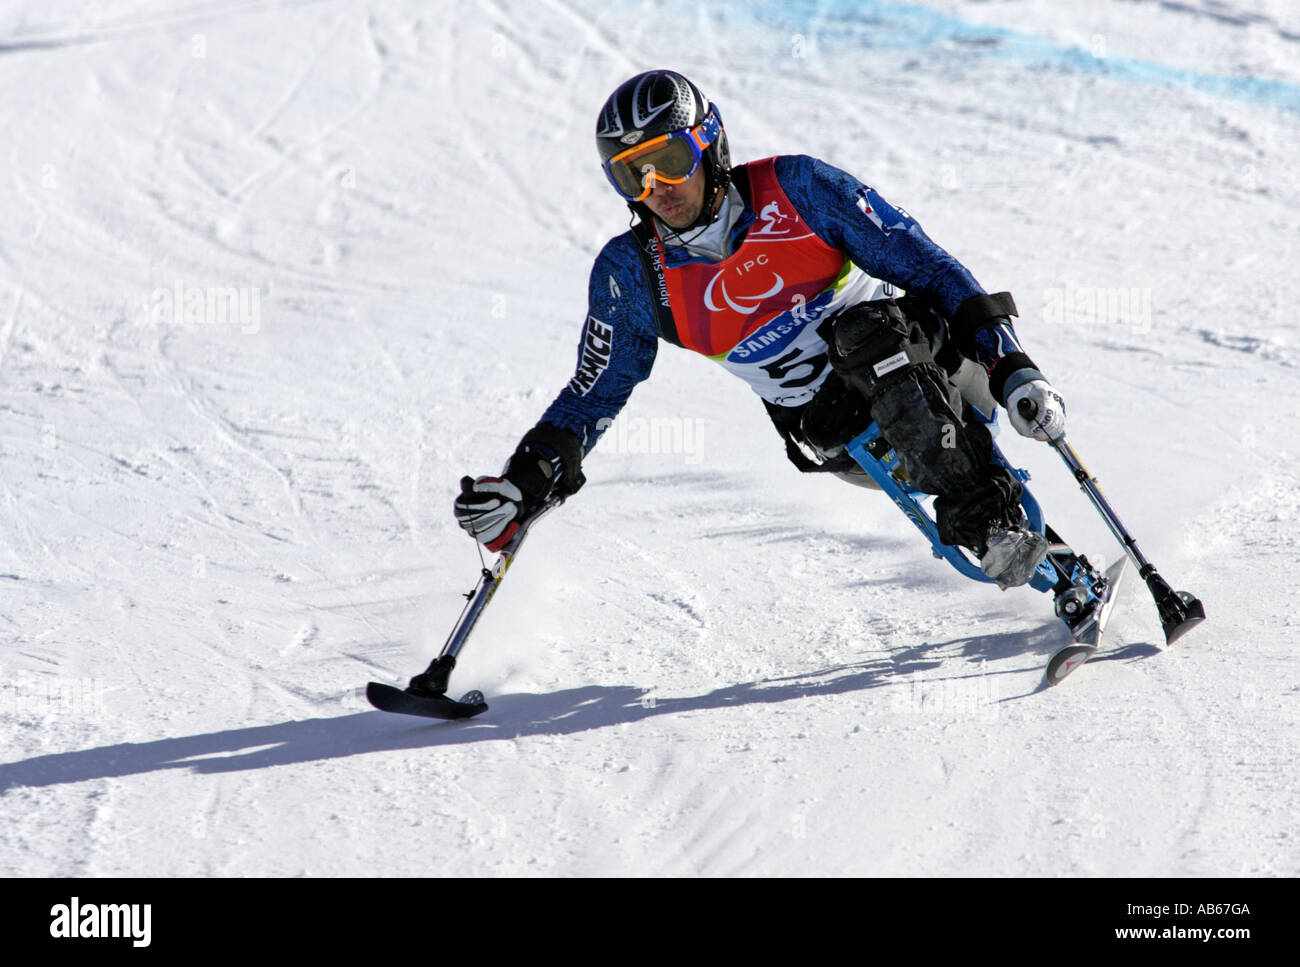 Jean Yves Le Meur of France in the Mens Alpine Skiing Giant Slalom Sitting competition Stock Photo